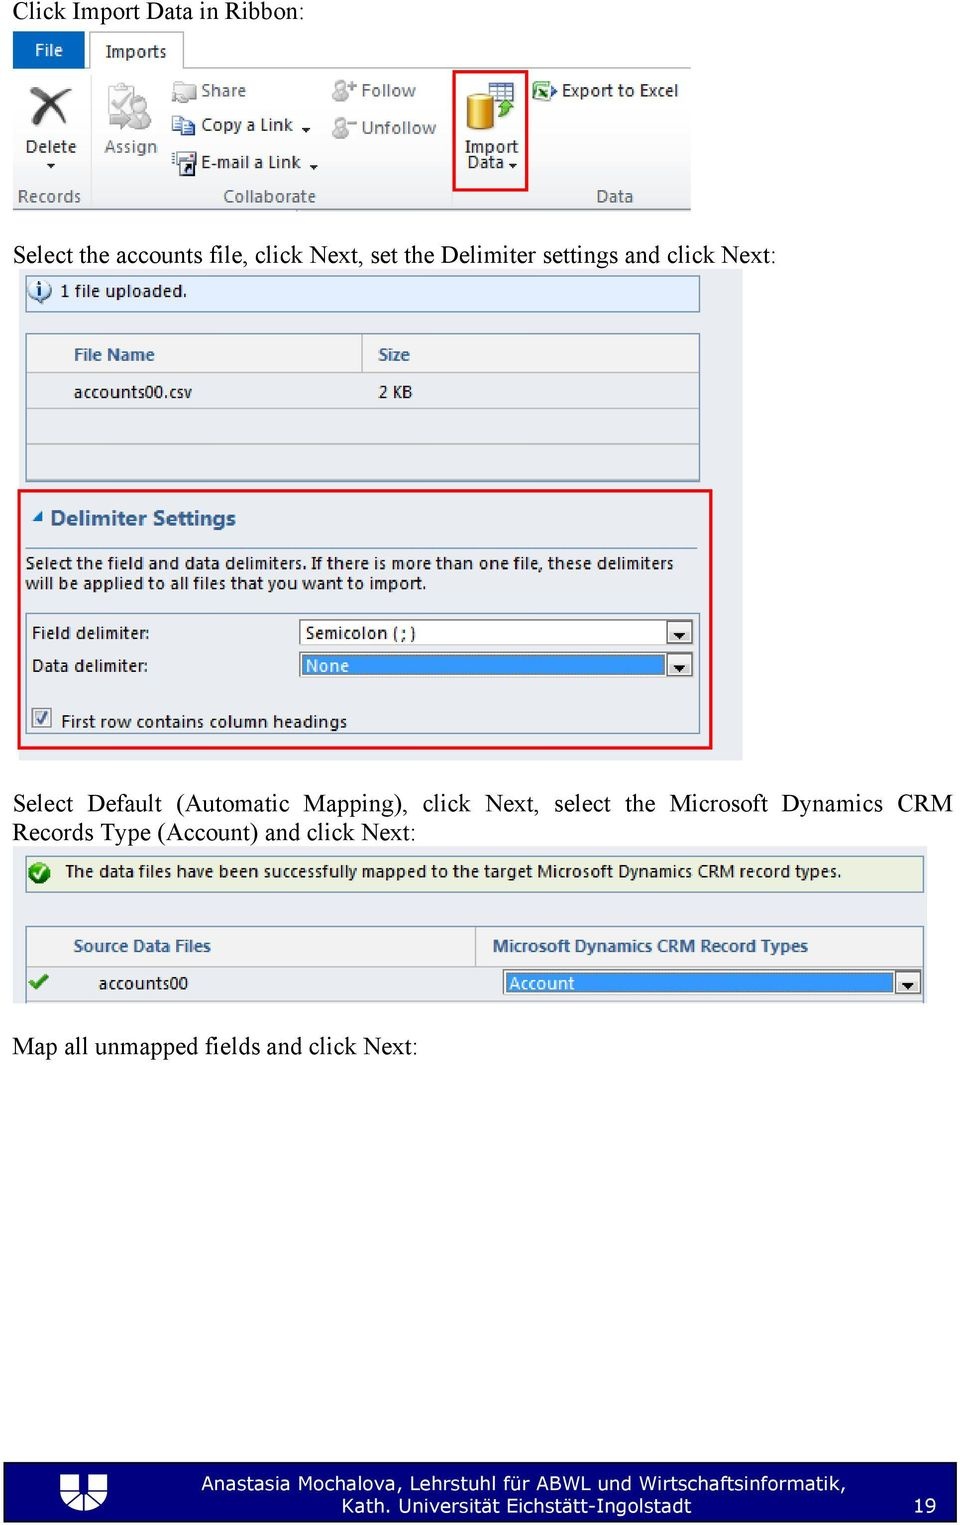 Next, select the Microsoft Dynamics CRM Records Type (Account) and click